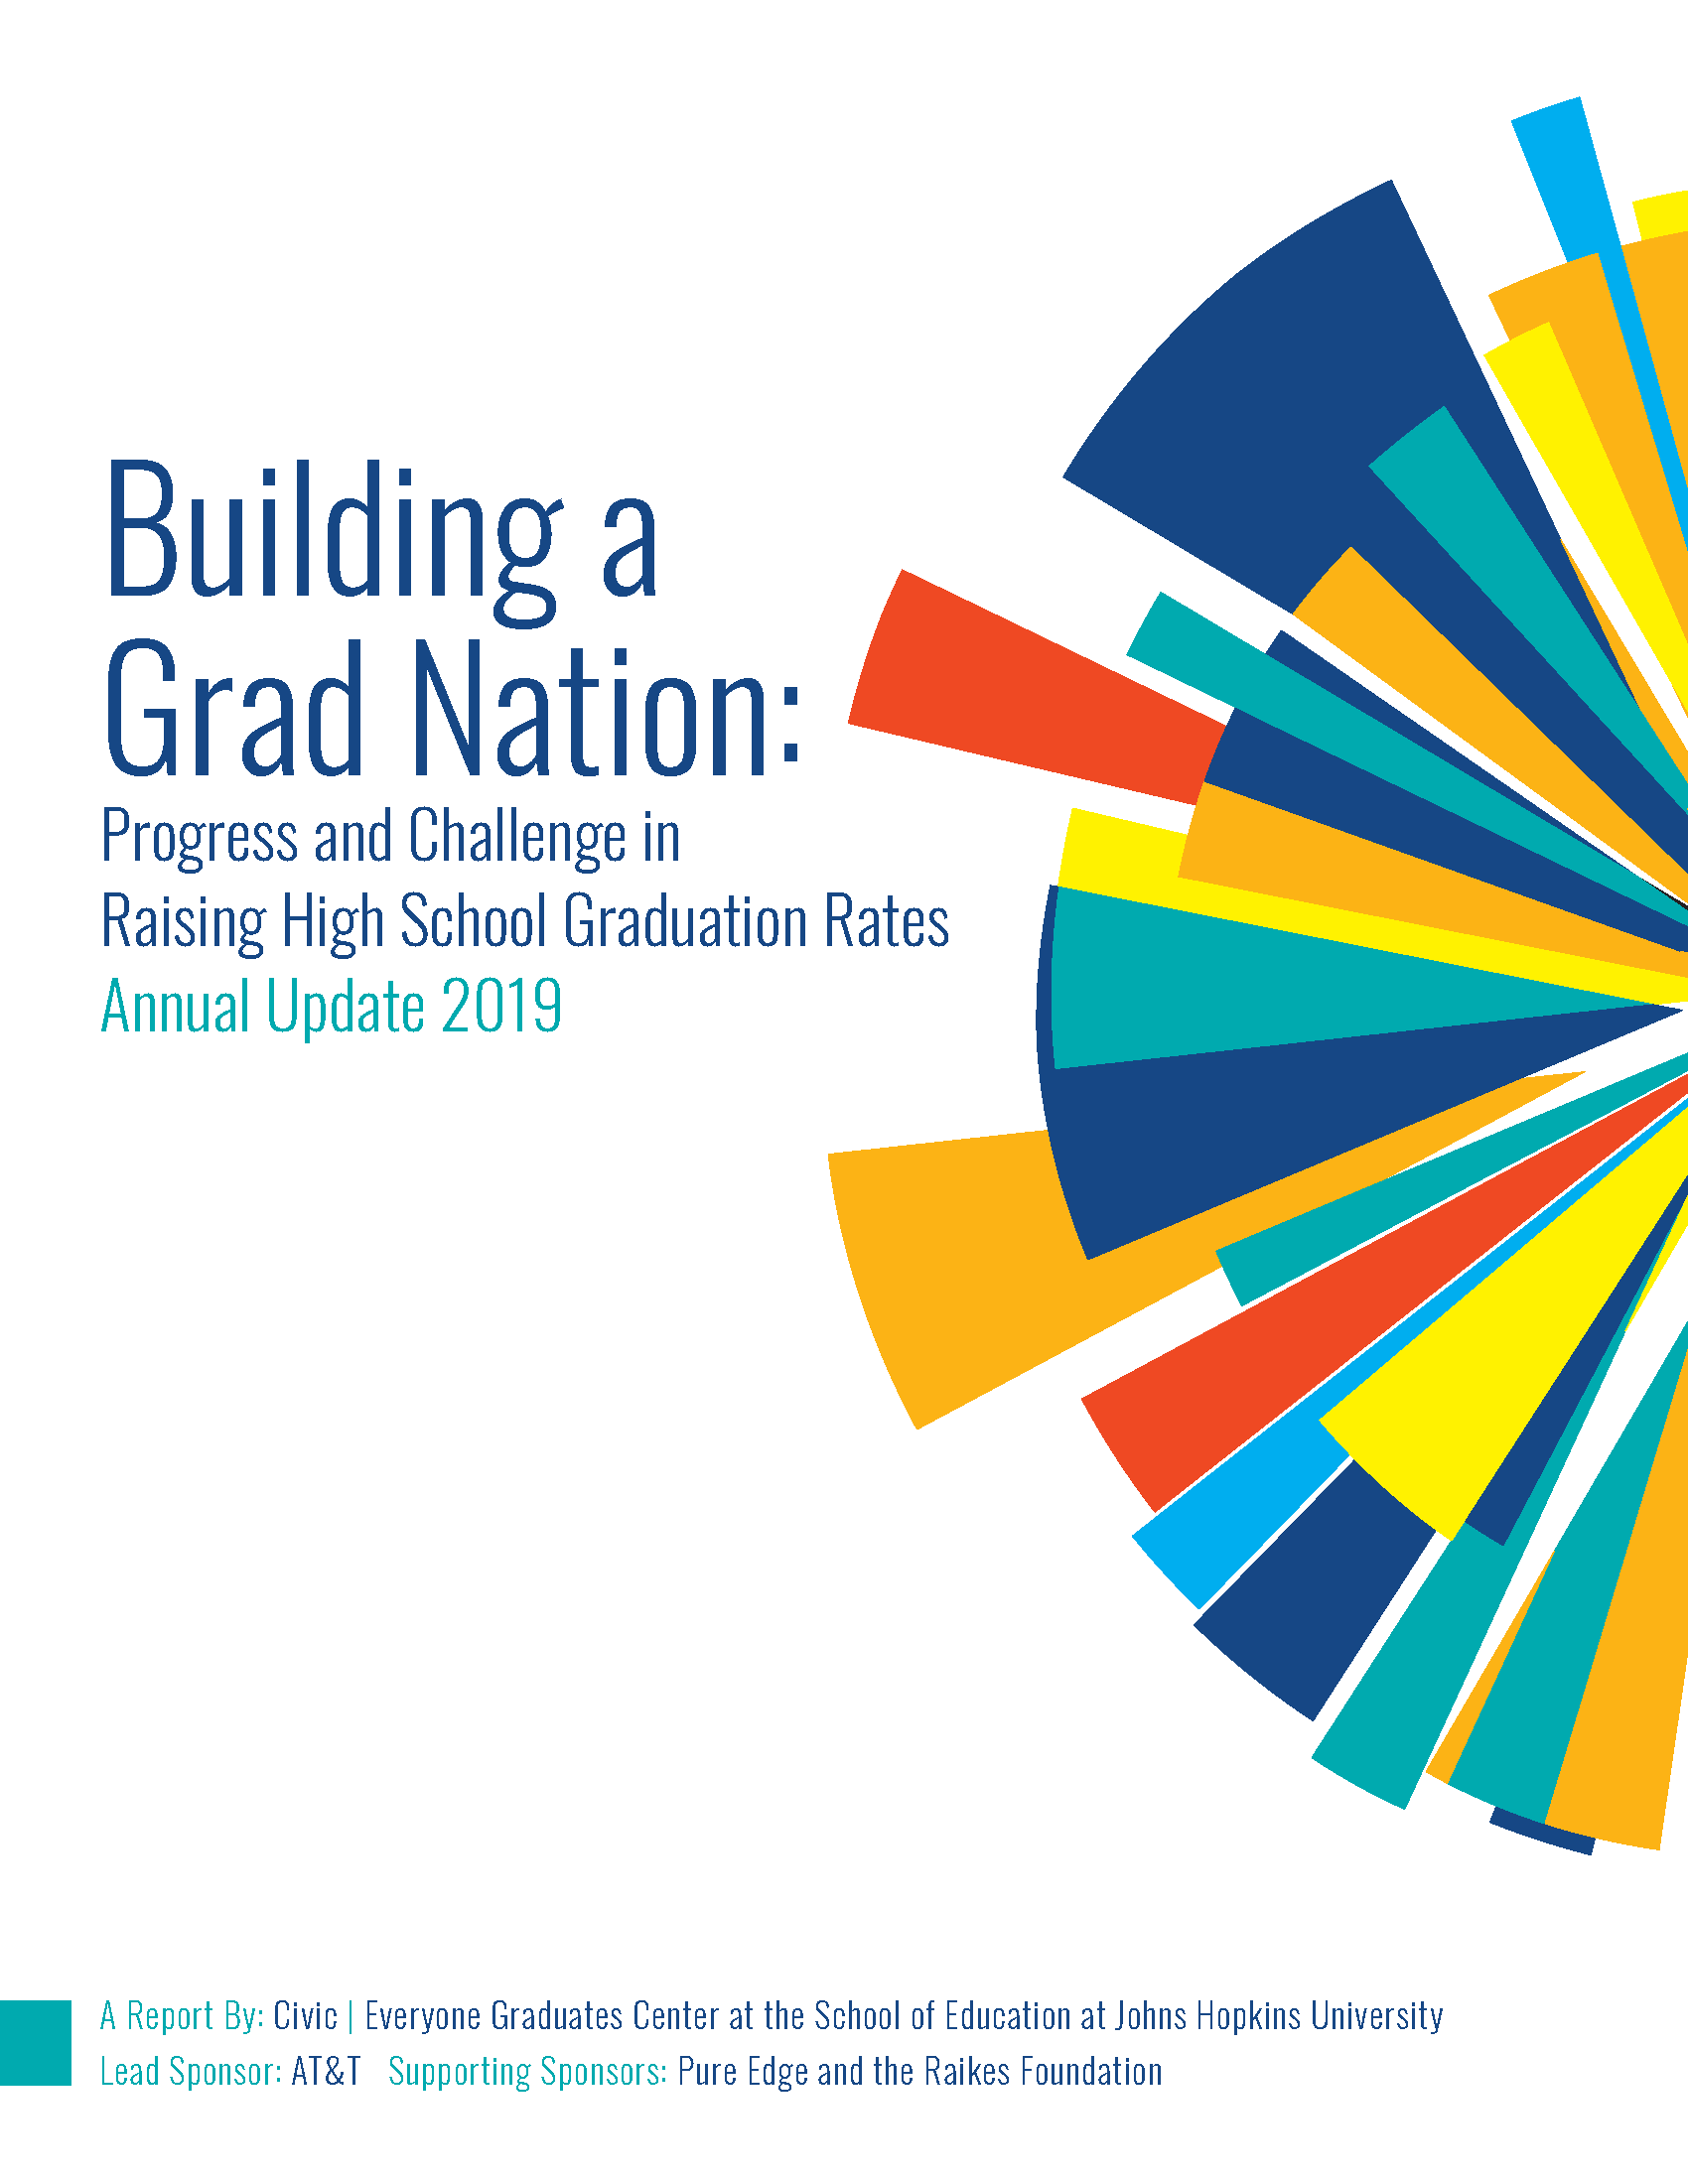 Building a Grad Nation Report Cover